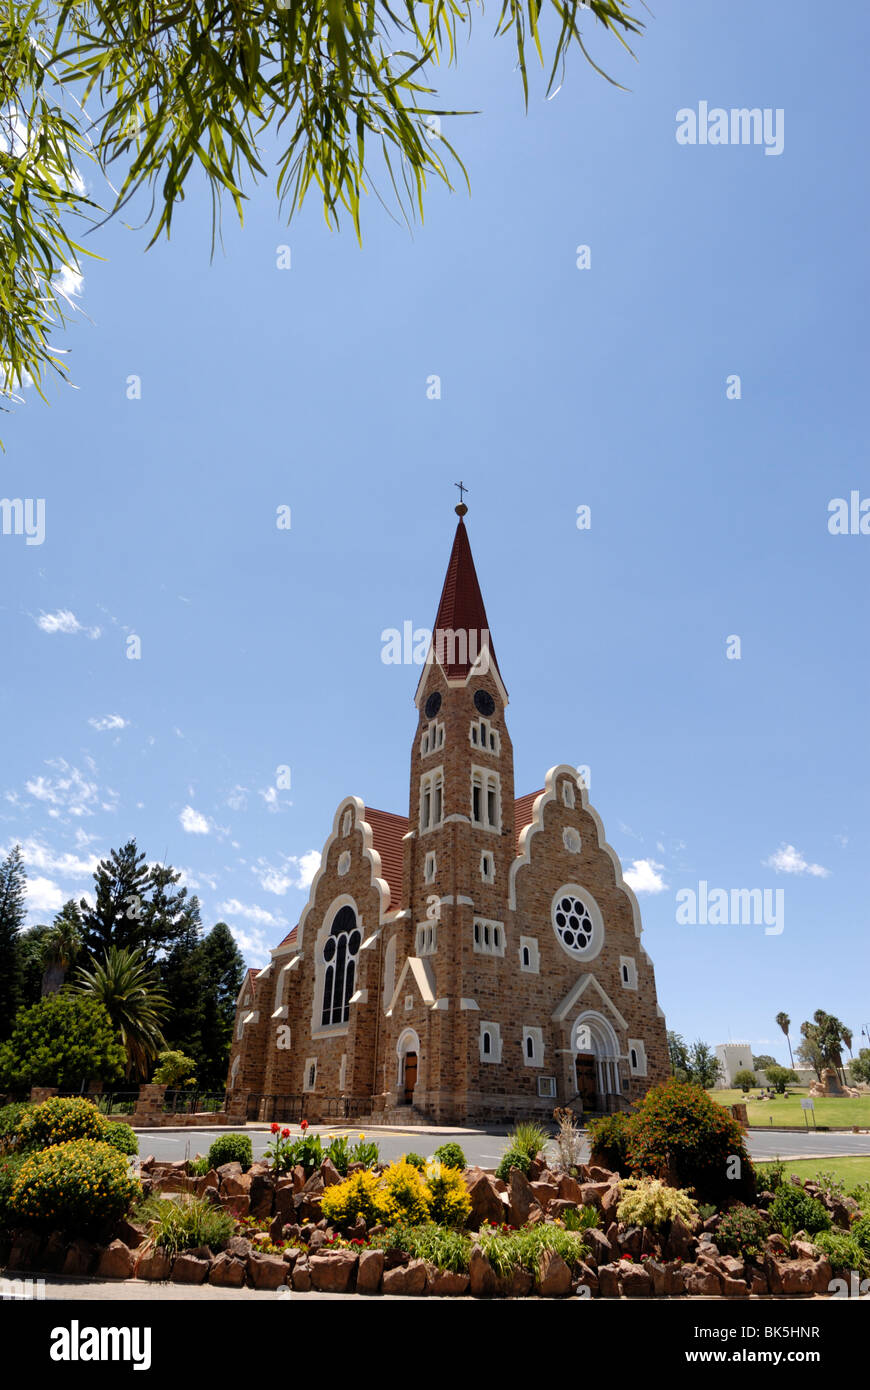 Picturesque church, Windhoek, Namibia, Africa - Stock Image